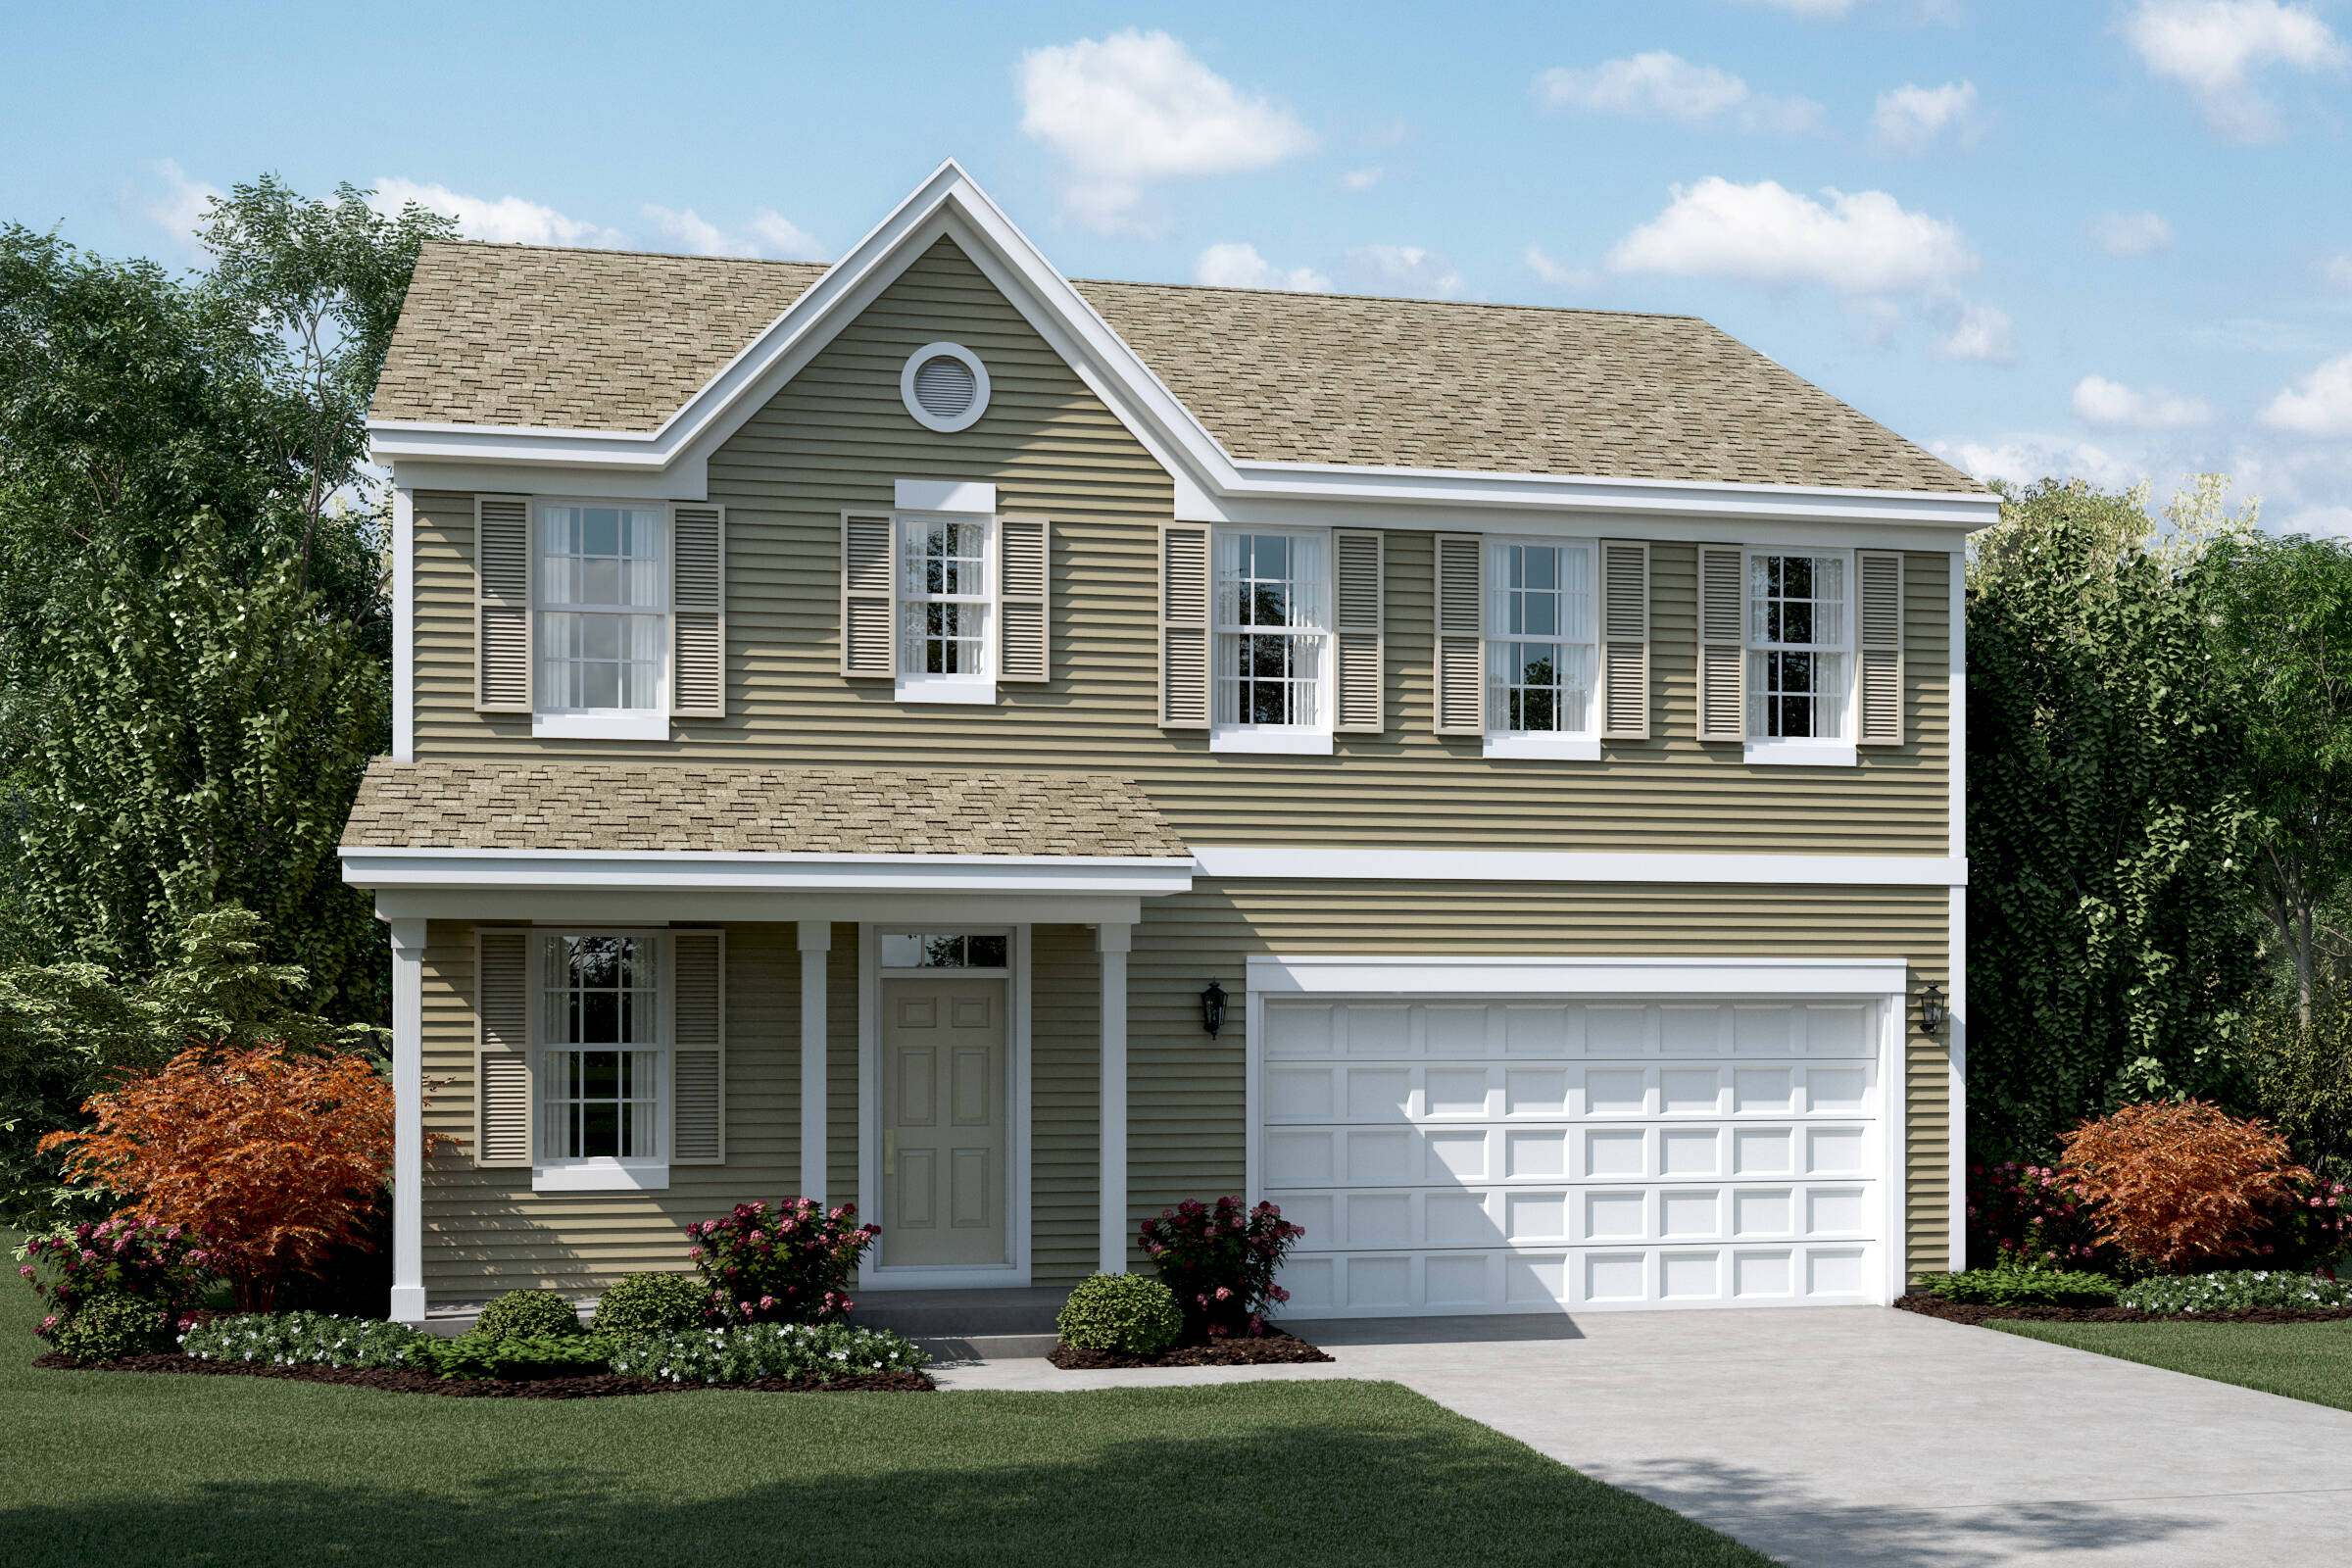 meadow a with porch new homes in south elgin illniois